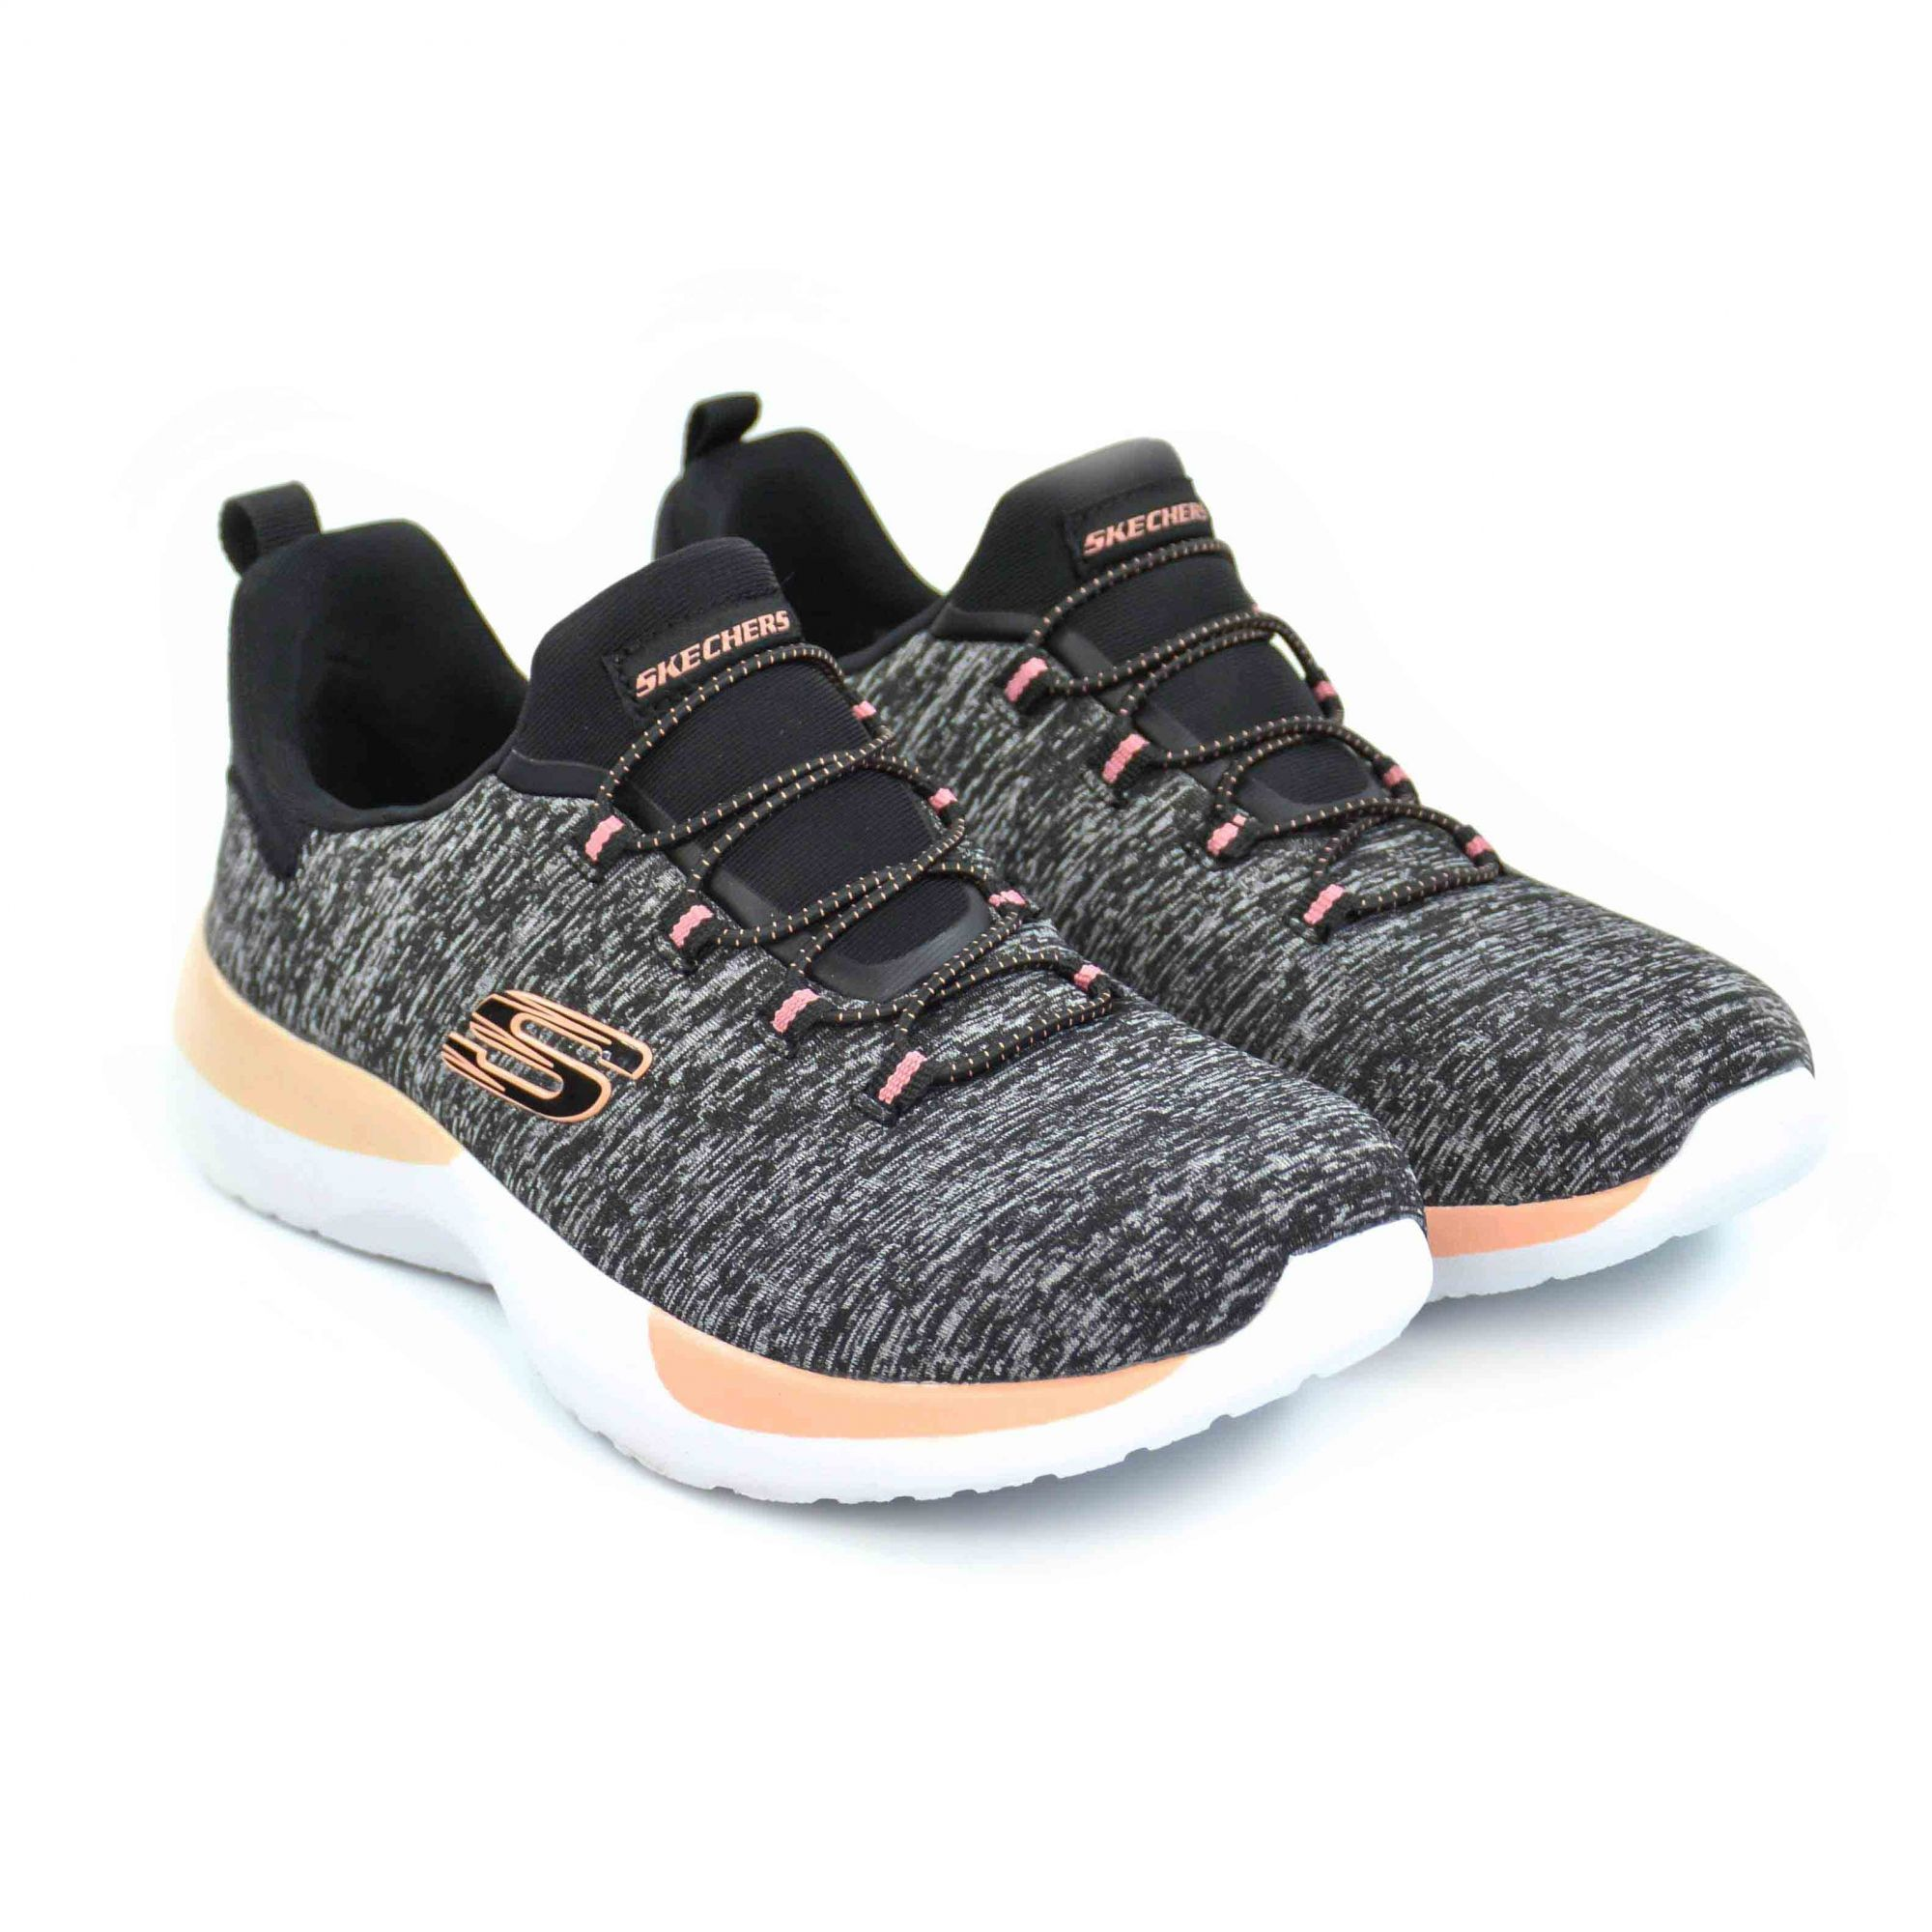 E> TENIS FEM DYNAMIGHT BREAKTHROUGH MESCLA SKECHERS 18291